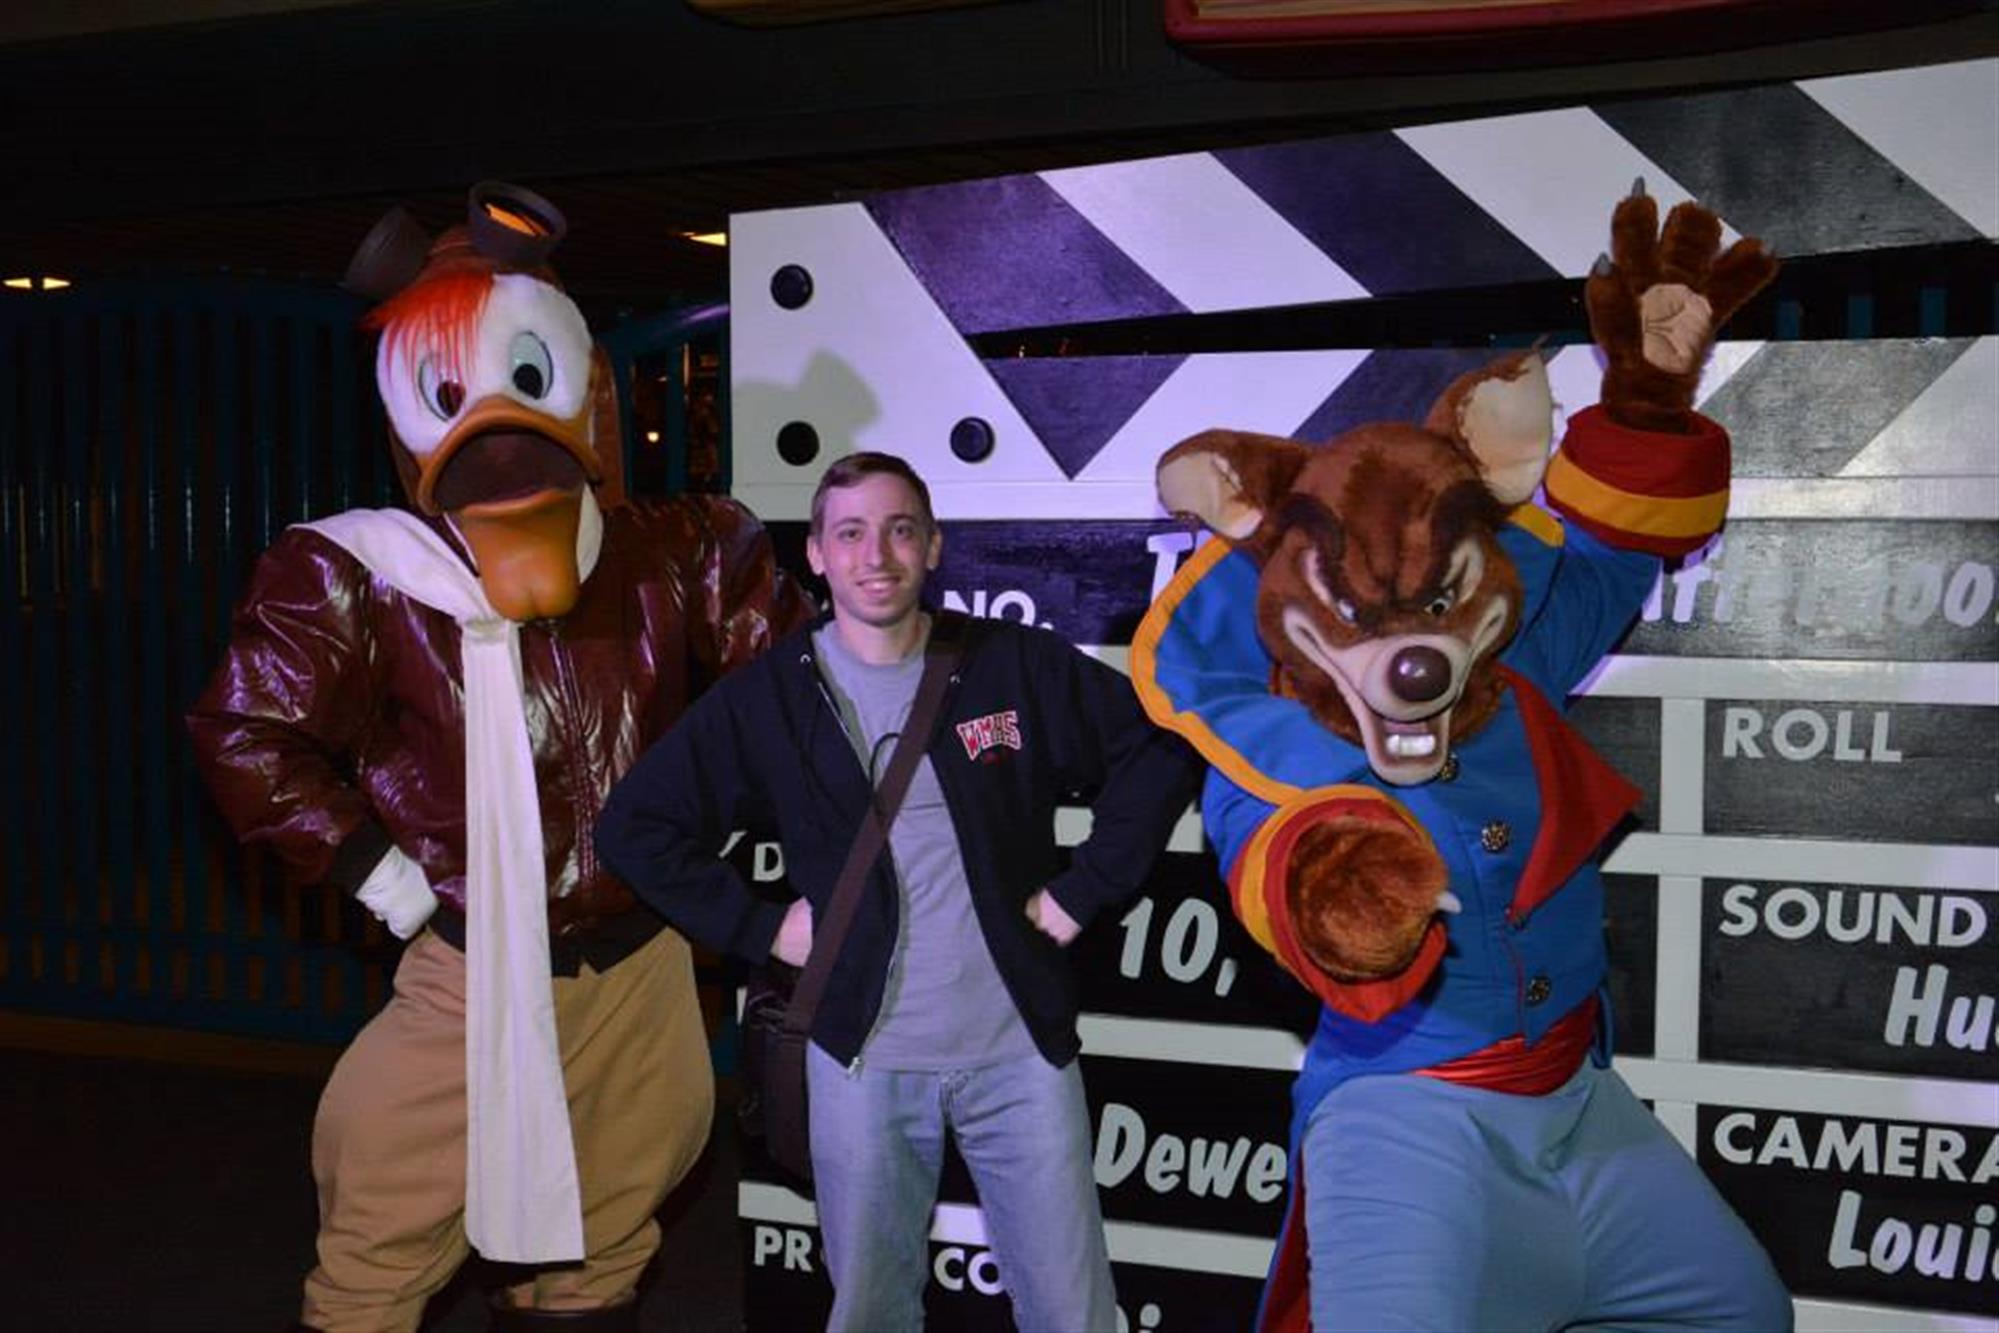 Kyle hangs with Launchpad McQuack and Don Karnage at Disneyland in 2014